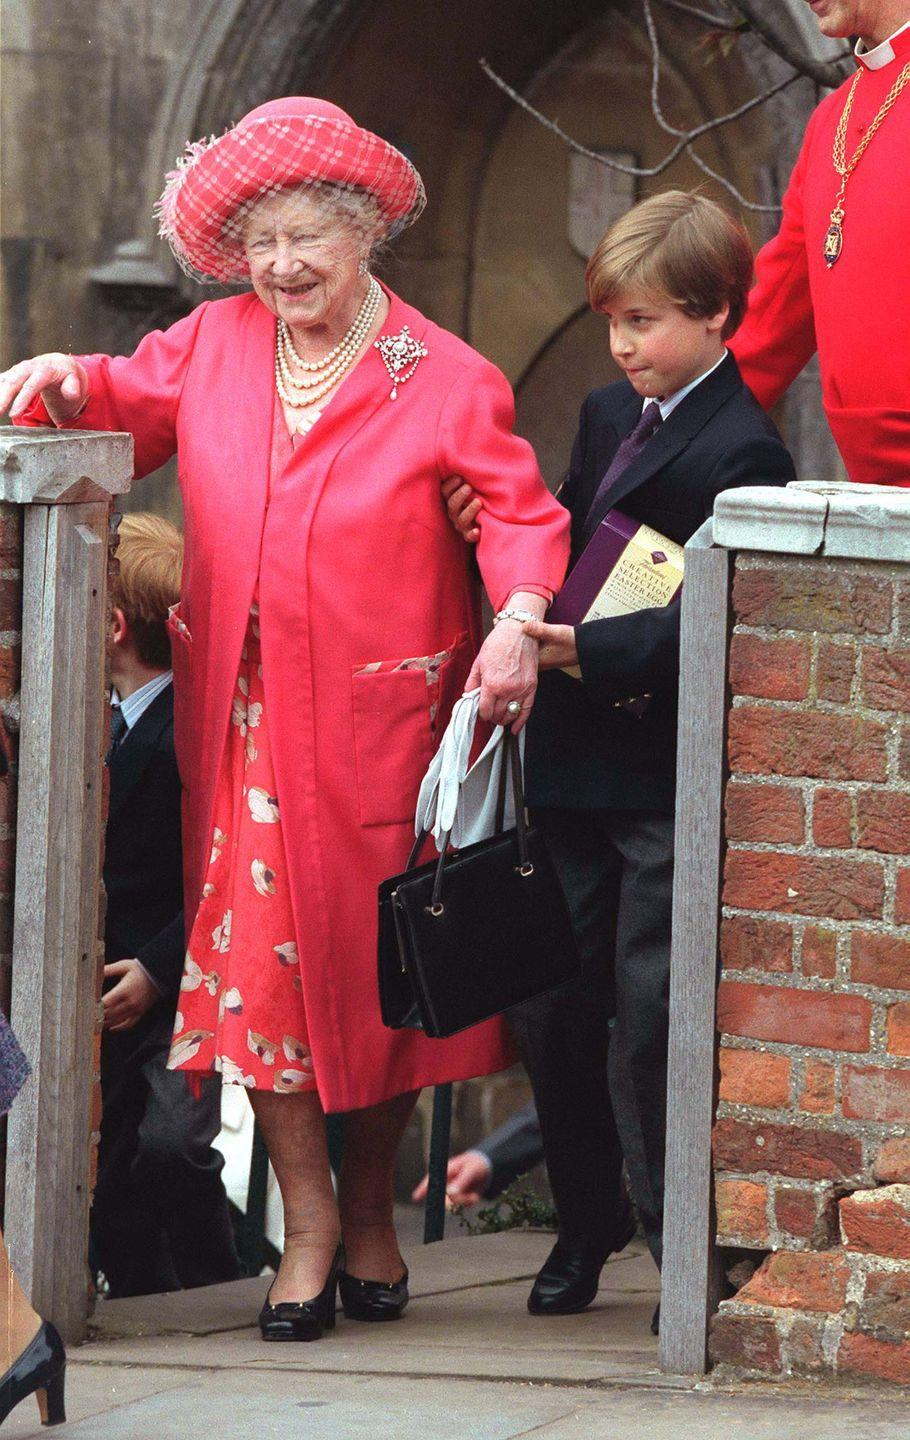 <p>The young prince who would have been 9 years old at the time, helping his Great Grandmother up the steps outside St. George's Chapel in Windsor Castle in April 1992.</p>